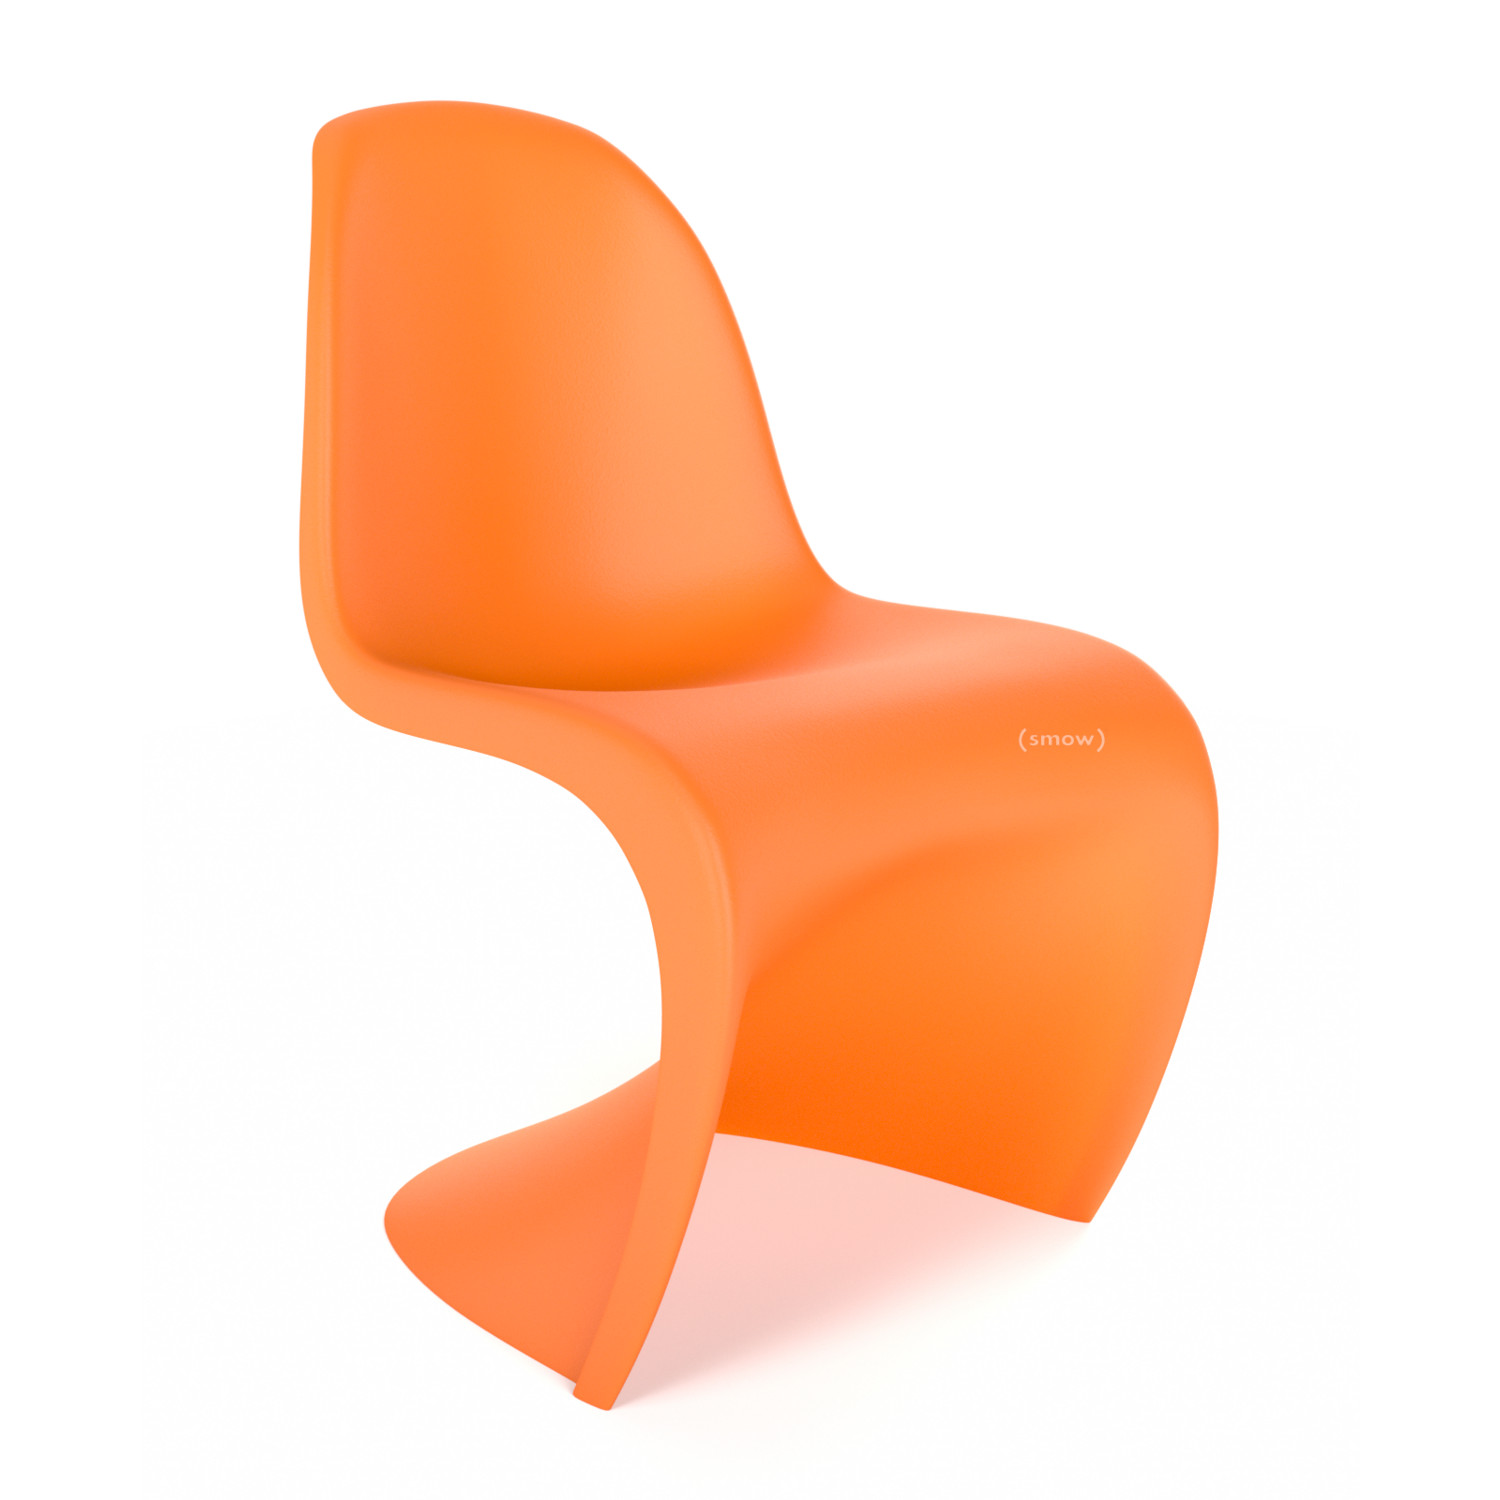 vitra panton chair tangerine by verner panton 1999. Black Bedroom Furniture Sets. Home Design Ideas